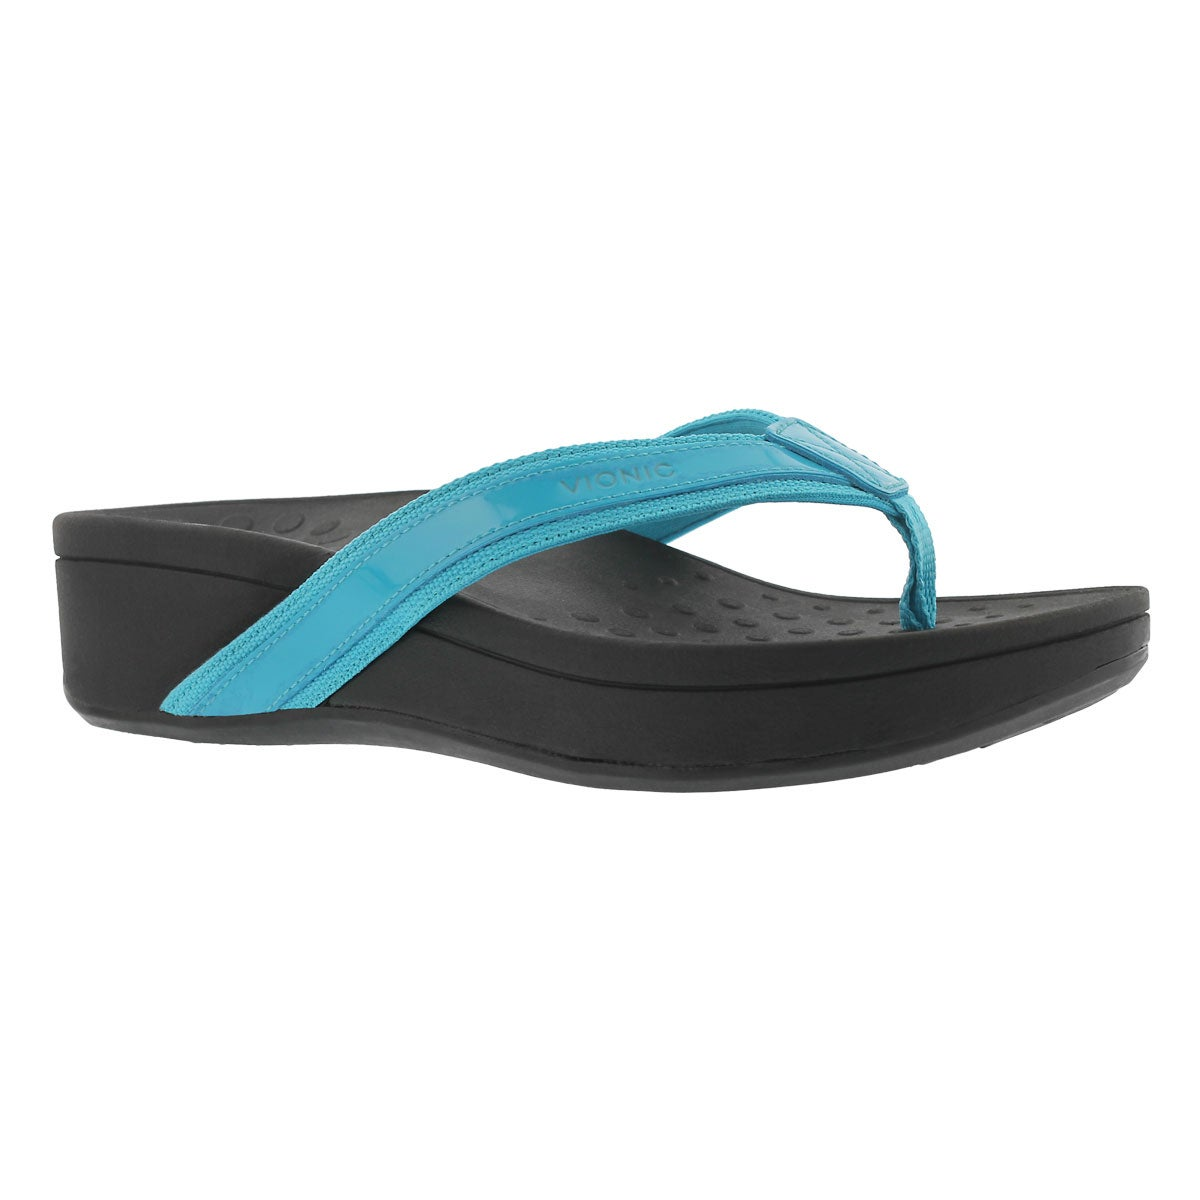 Women's HIGH TIDE turquoise support wdg sandals